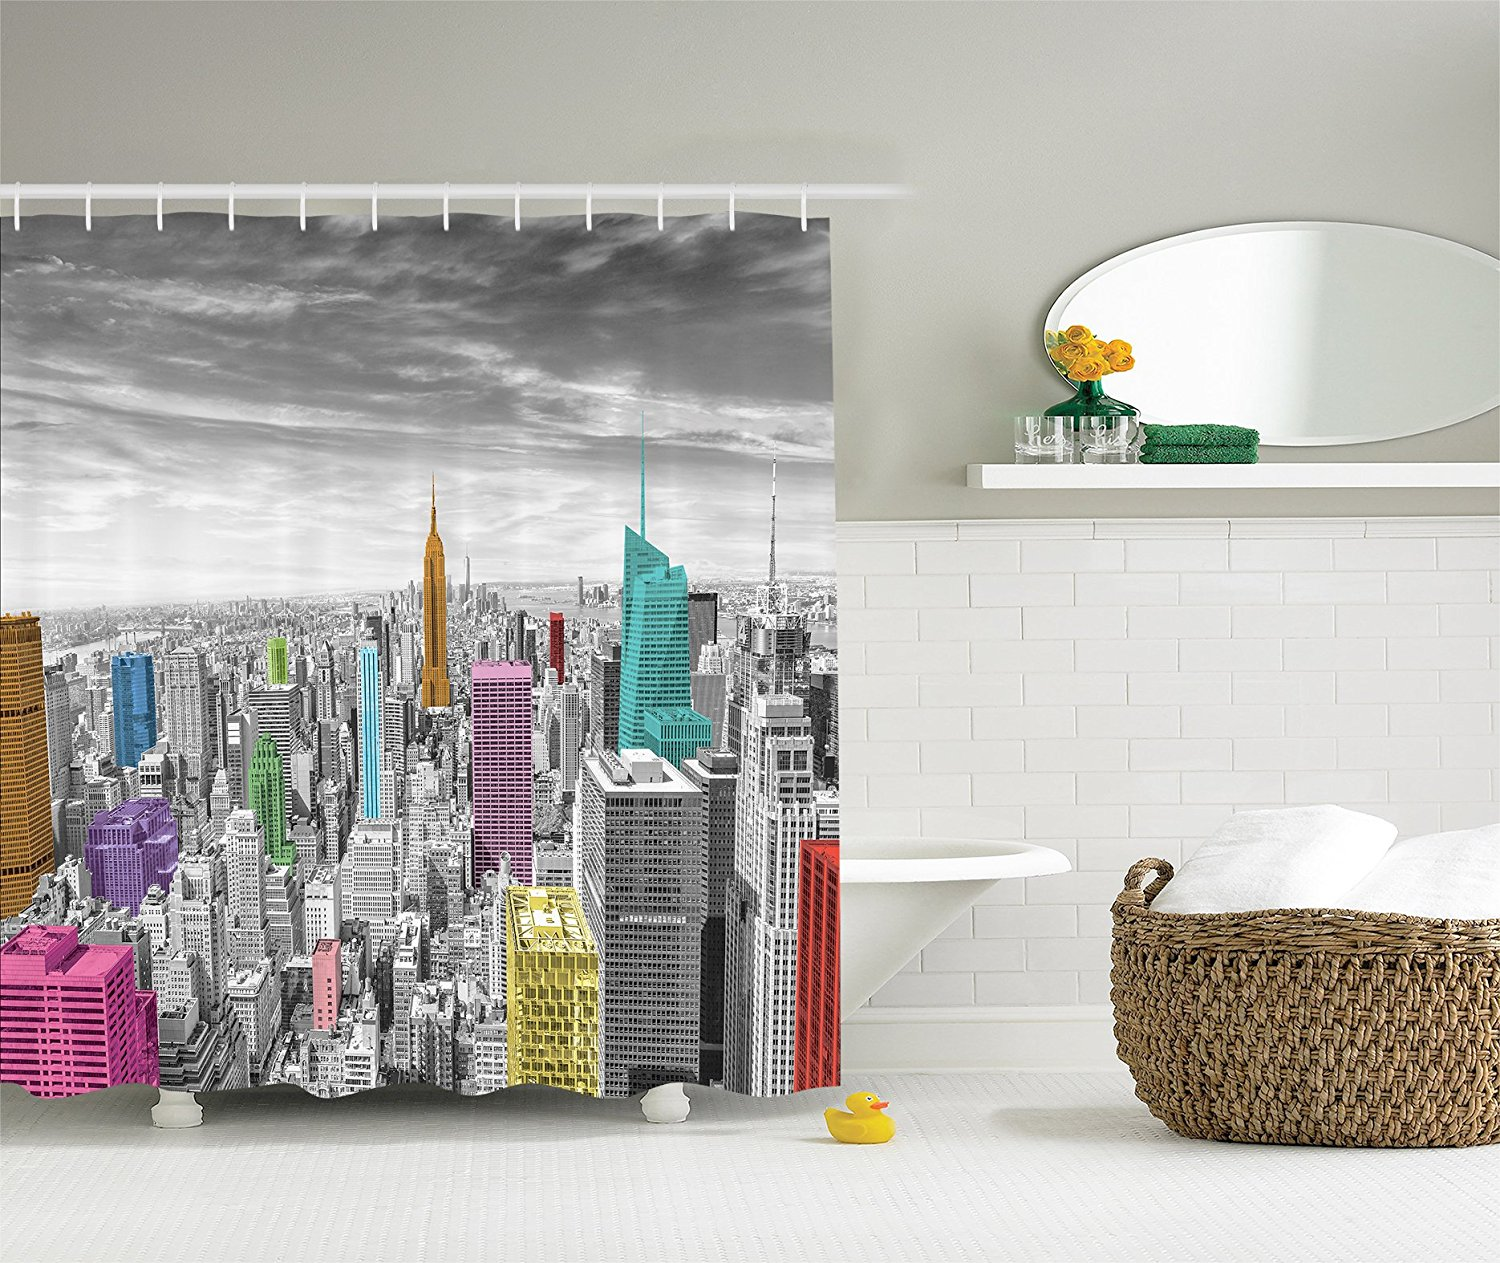 Memory Home Cityscape Shower Curtain Bath Decorations NYC New York City Skyline Panoramic Picture Fabric Bathroom